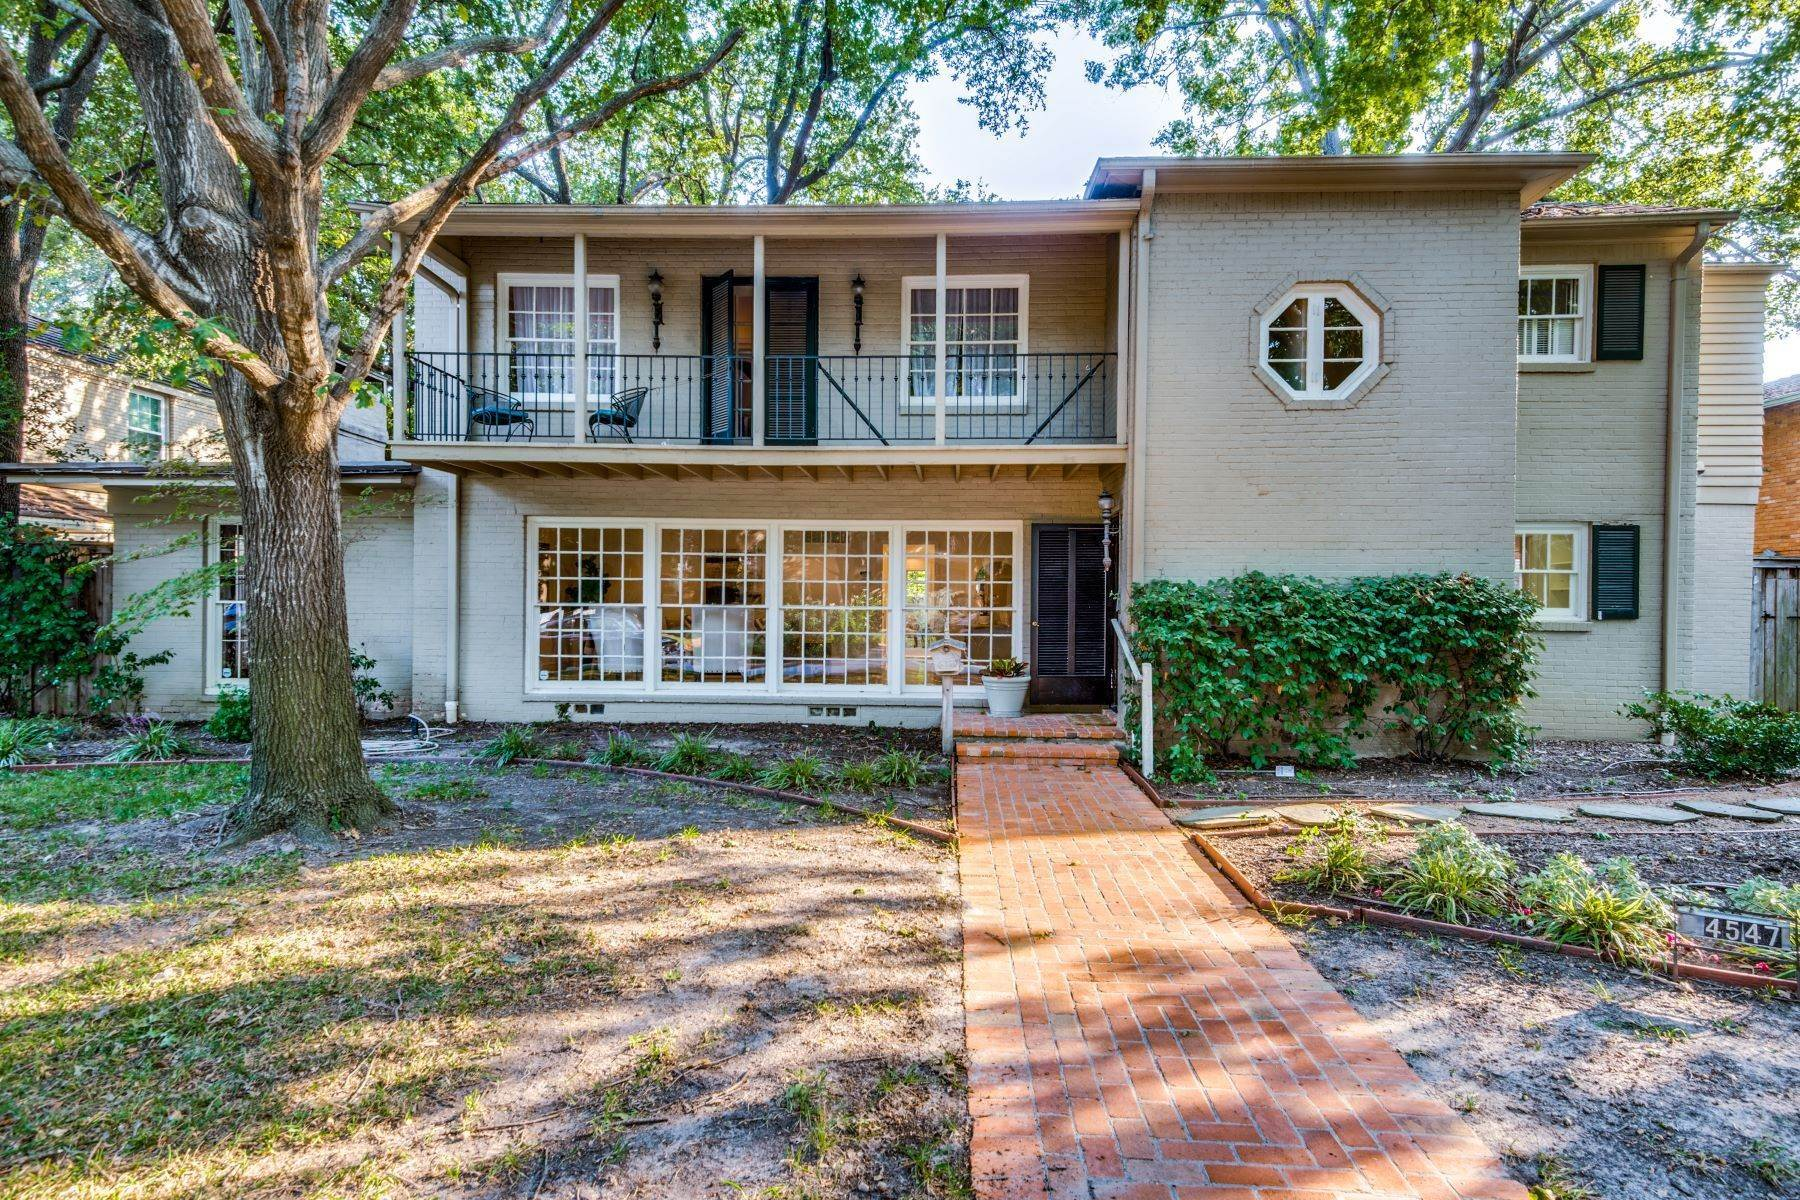 Multi-Family Homes for Sale at FULL DUPLEX! Great Investment Property 4549 Westway Avenue Highland Park, Texas 75205 United States